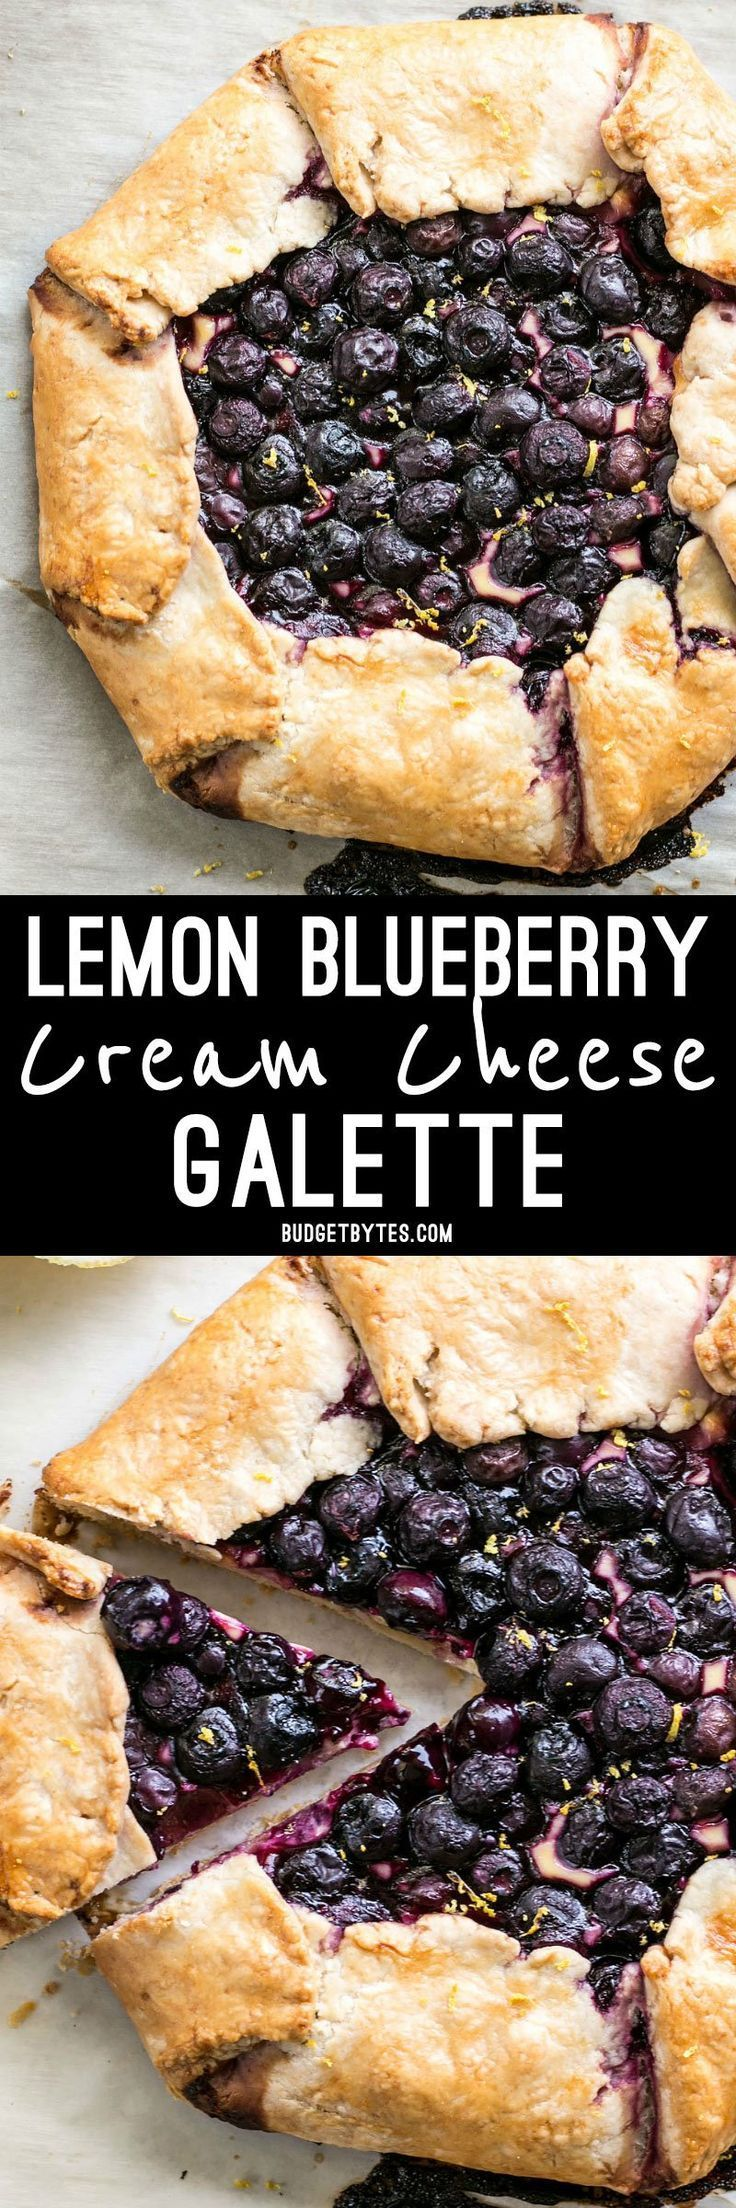 This Lemon Blueberry Cream Cheese Galette is a simple and rustic dessert that can be made with frozen or fresh berries. @budgetbytes